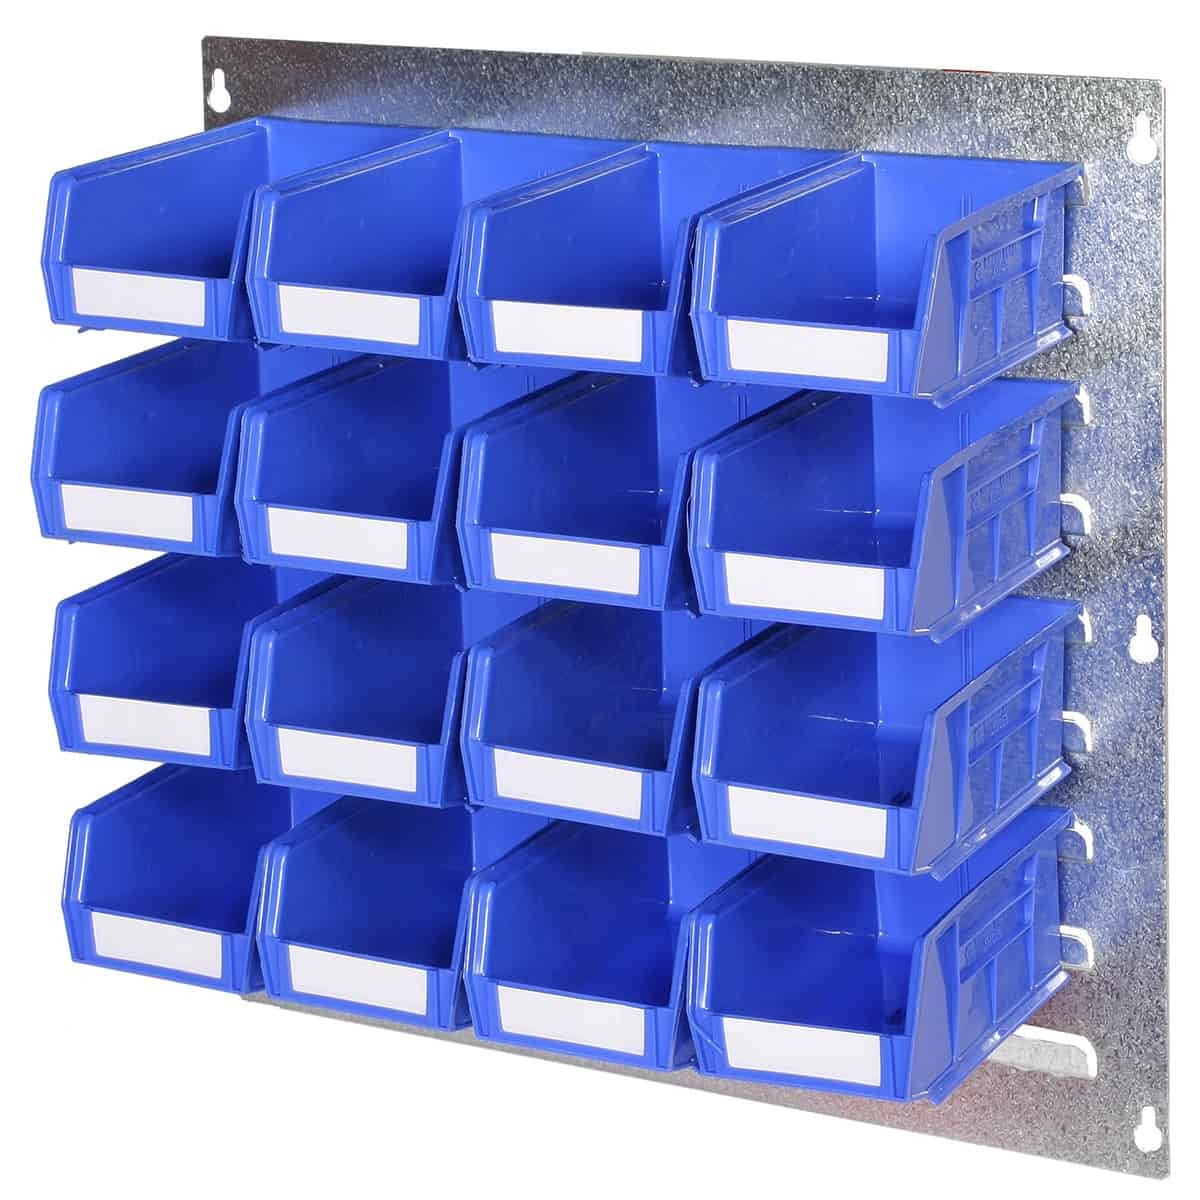 WALL LOUVRE PANELS WITH PLASTIC BINS (T)